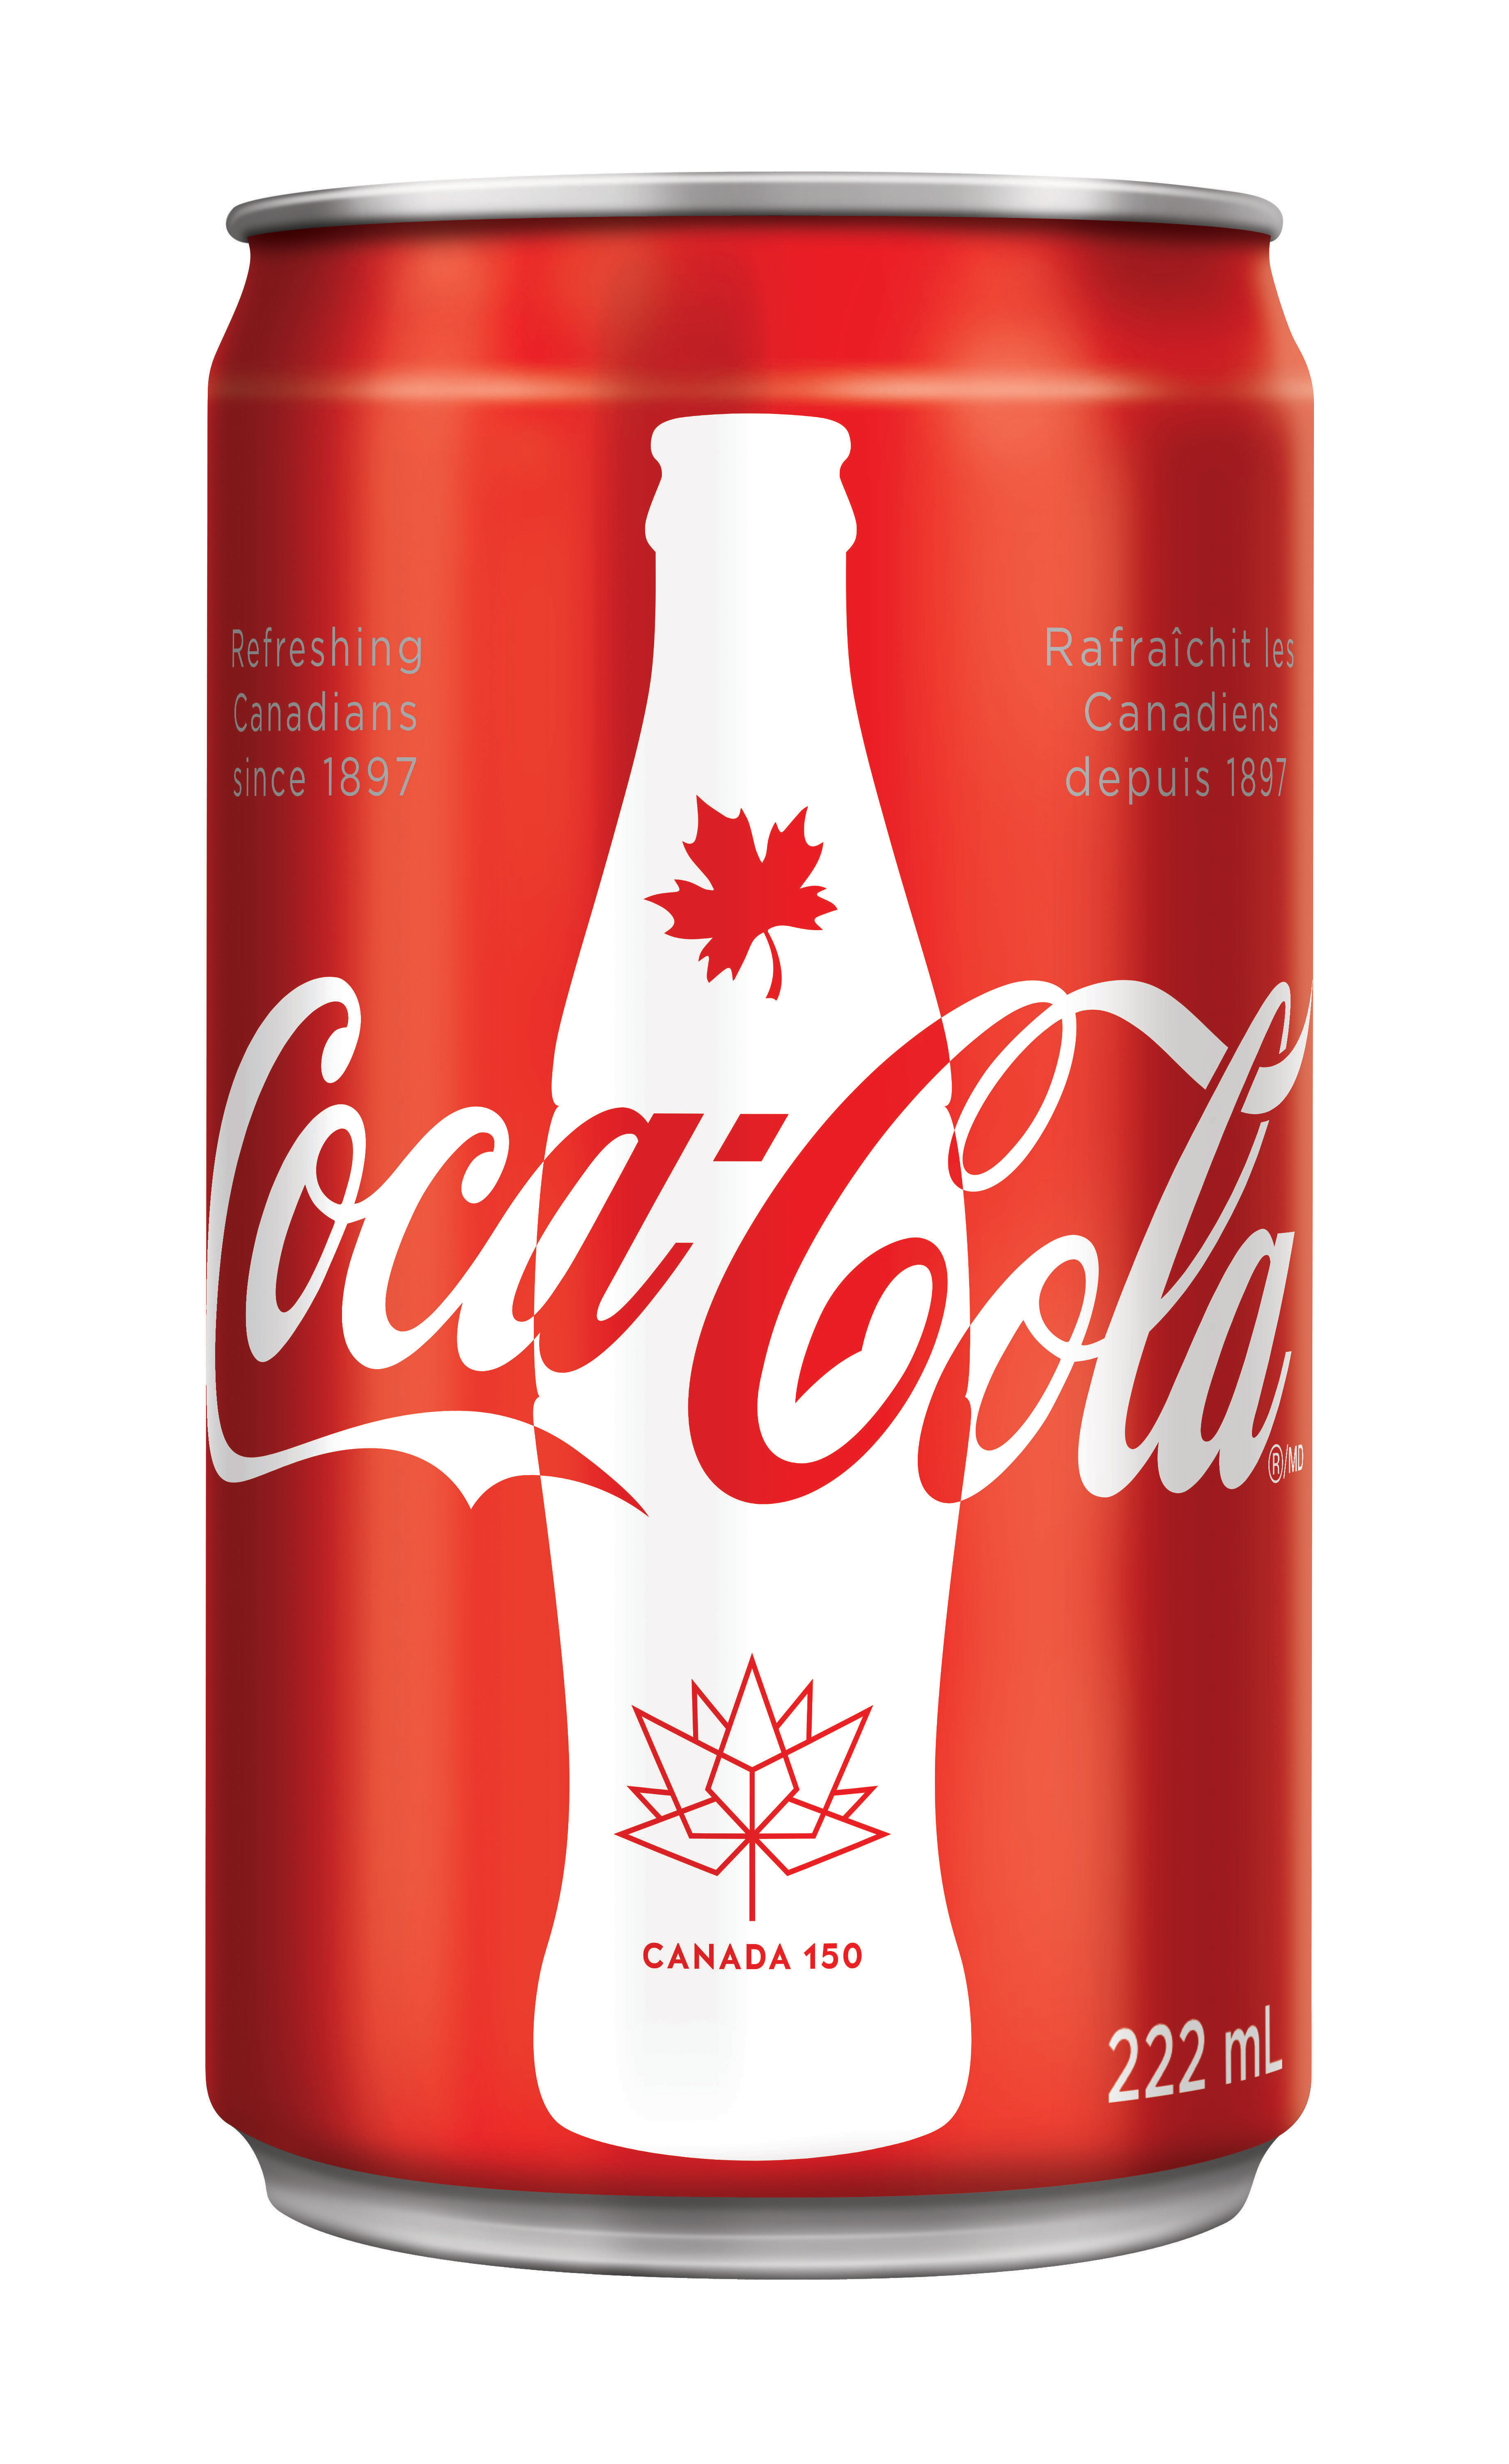 This summer, Canadians will be able to toast to Canada with commemorative 222 mL mini cans of ice-cold Coca-Cola honouring Canada's heritage. (Photo: Business Wire)